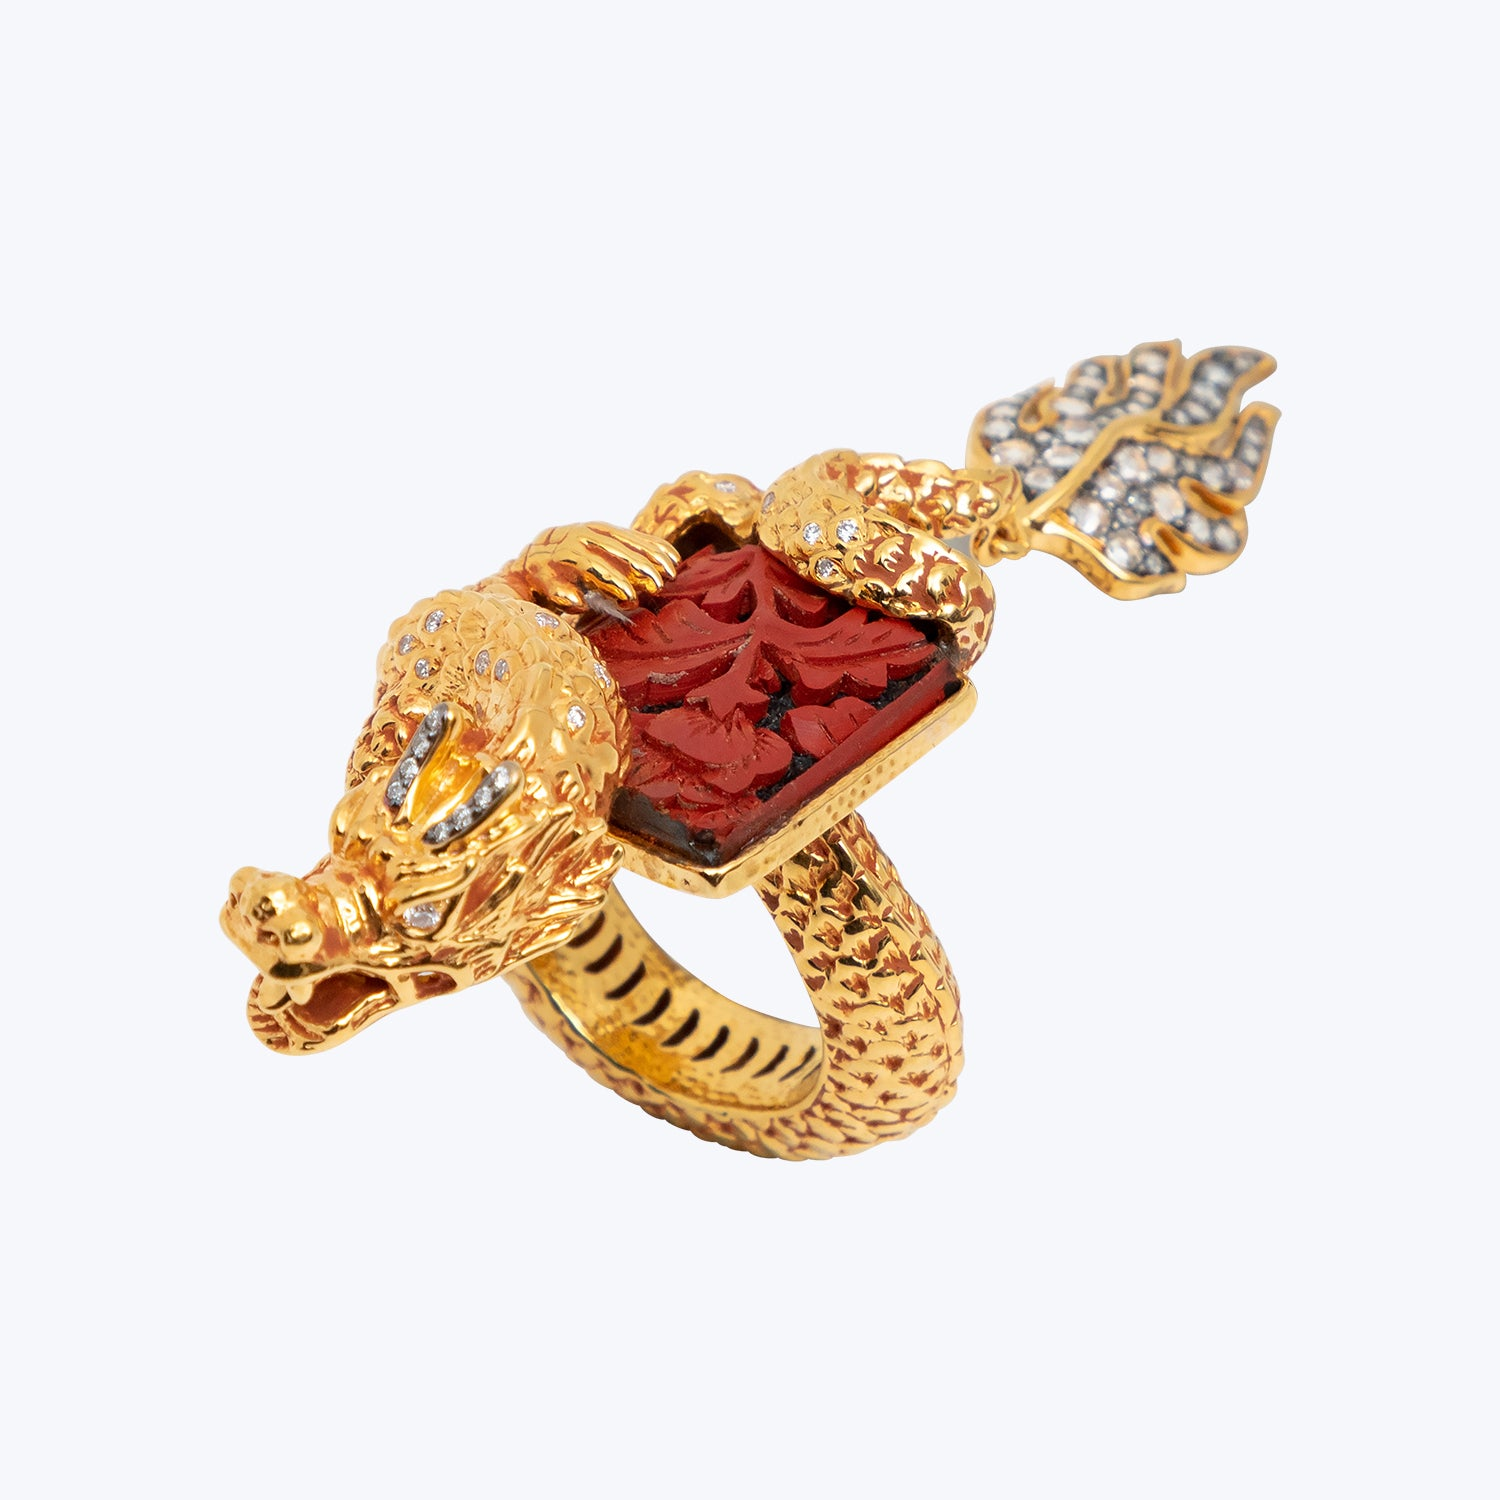 Dragon Ring with Carved Cinnabar Lacquer and Diamond